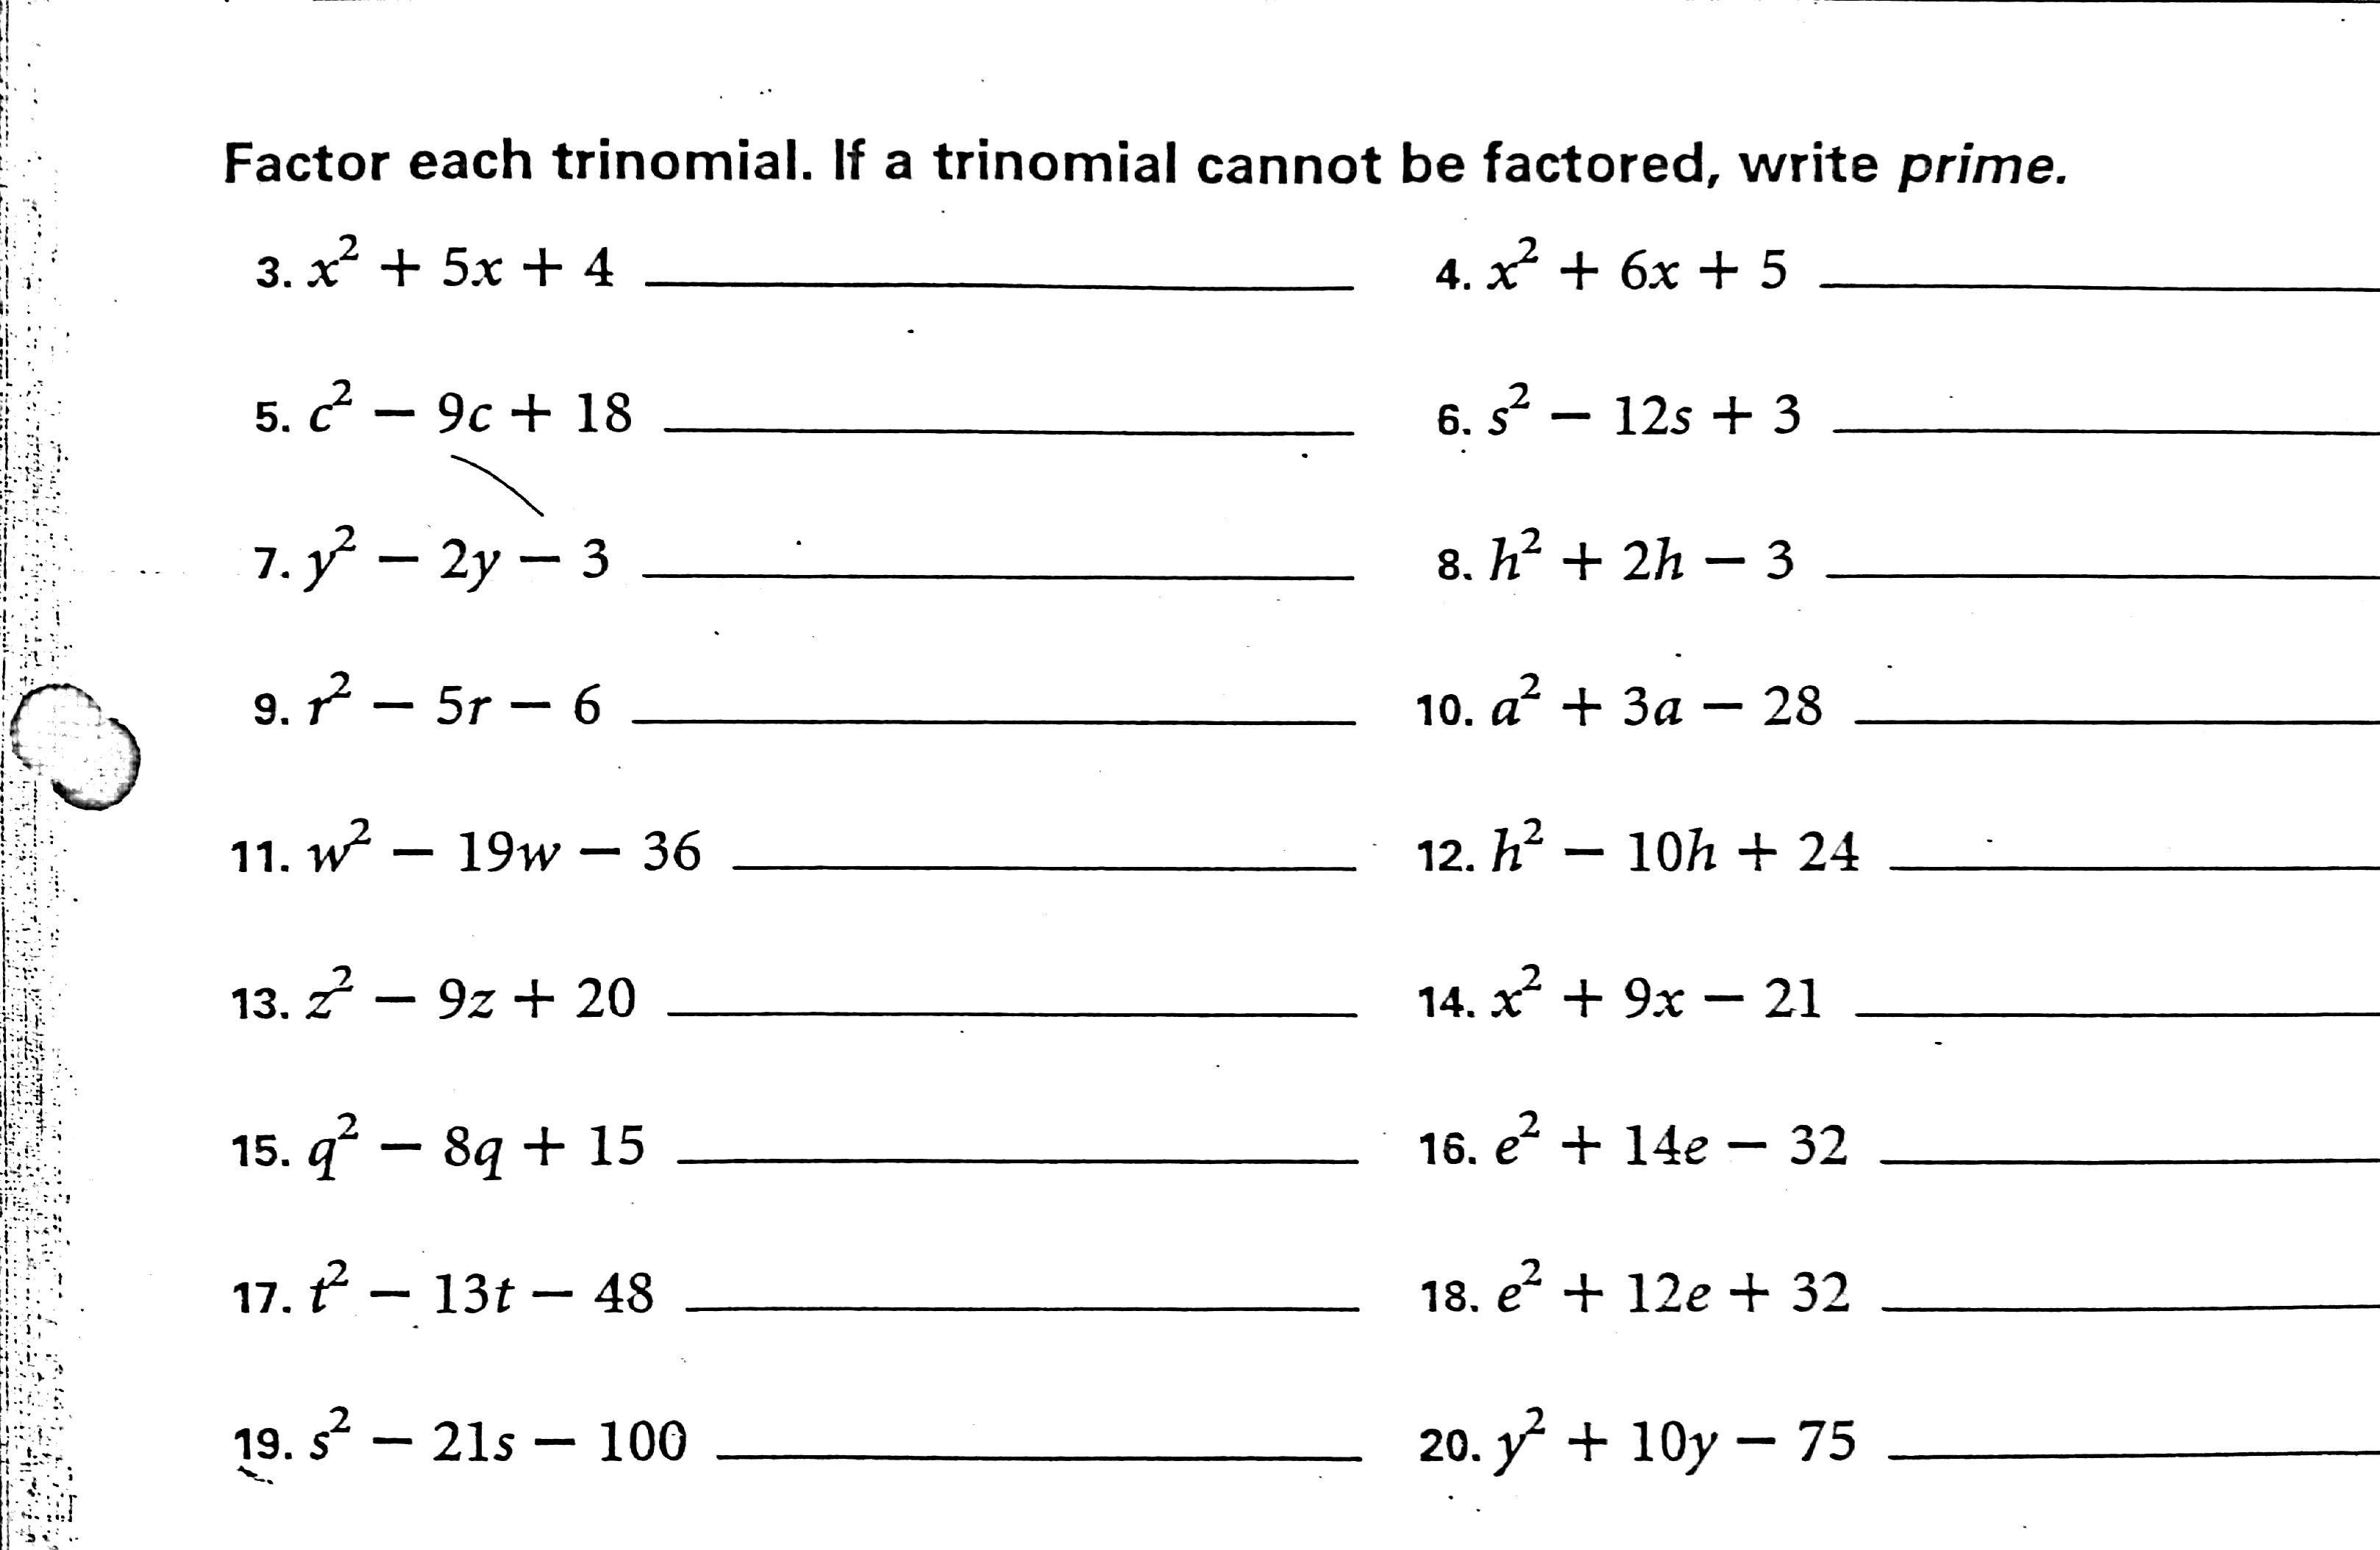 worksheet Factoring Trinomials Practice Worksheet factoring trinomials practice worksheet abitlikethis answer key intrepidpath jpg